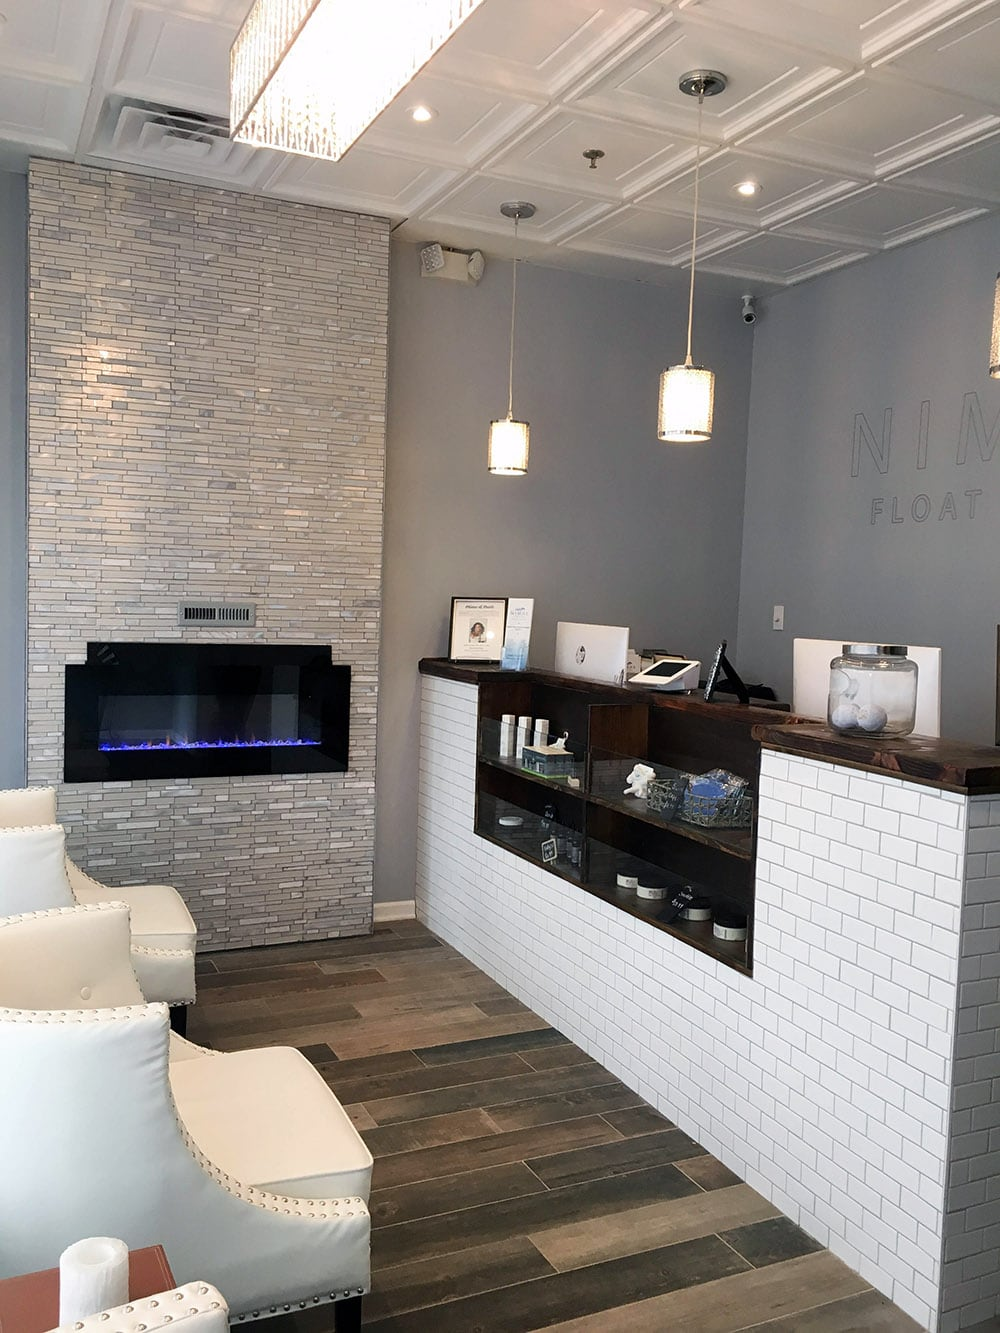 The front desk at Nimas Float and Spa